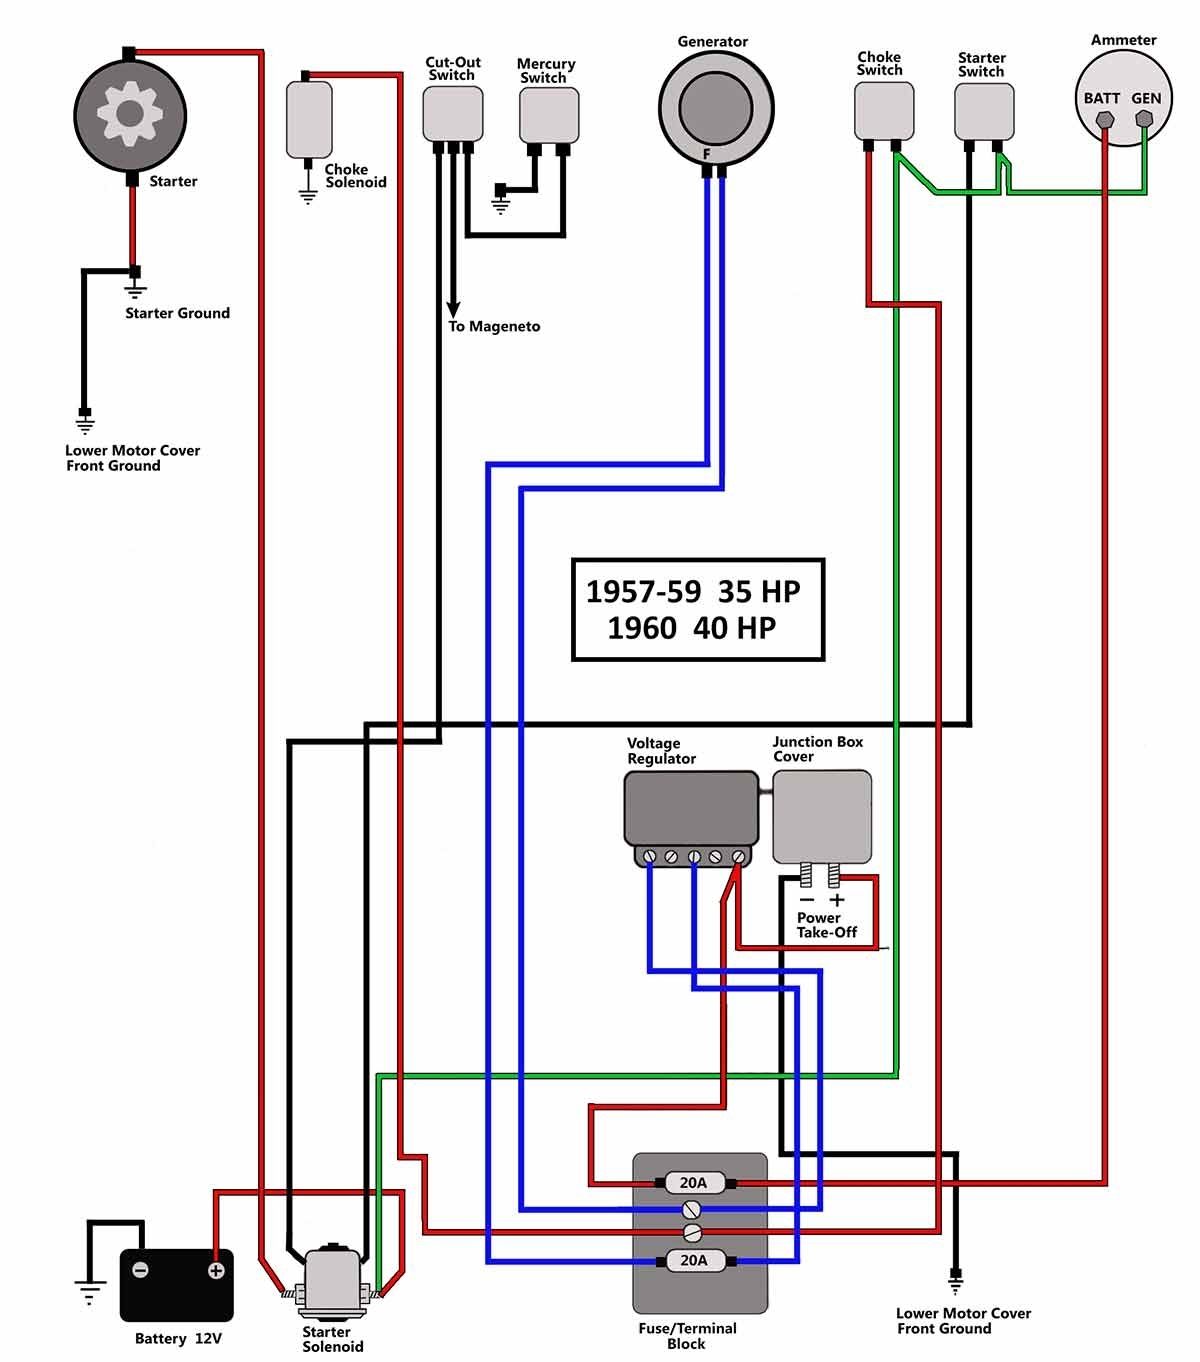 vdo gauges wiring diagrams and boat tach diagram e z go golf cart for boat gauge wiring diagram for tachometer vdo wiring diagram diagram vdo wiring siemens 5wk9628 \u2022 free golf cart battery meter wiring diagram at panicattacktreatment.co